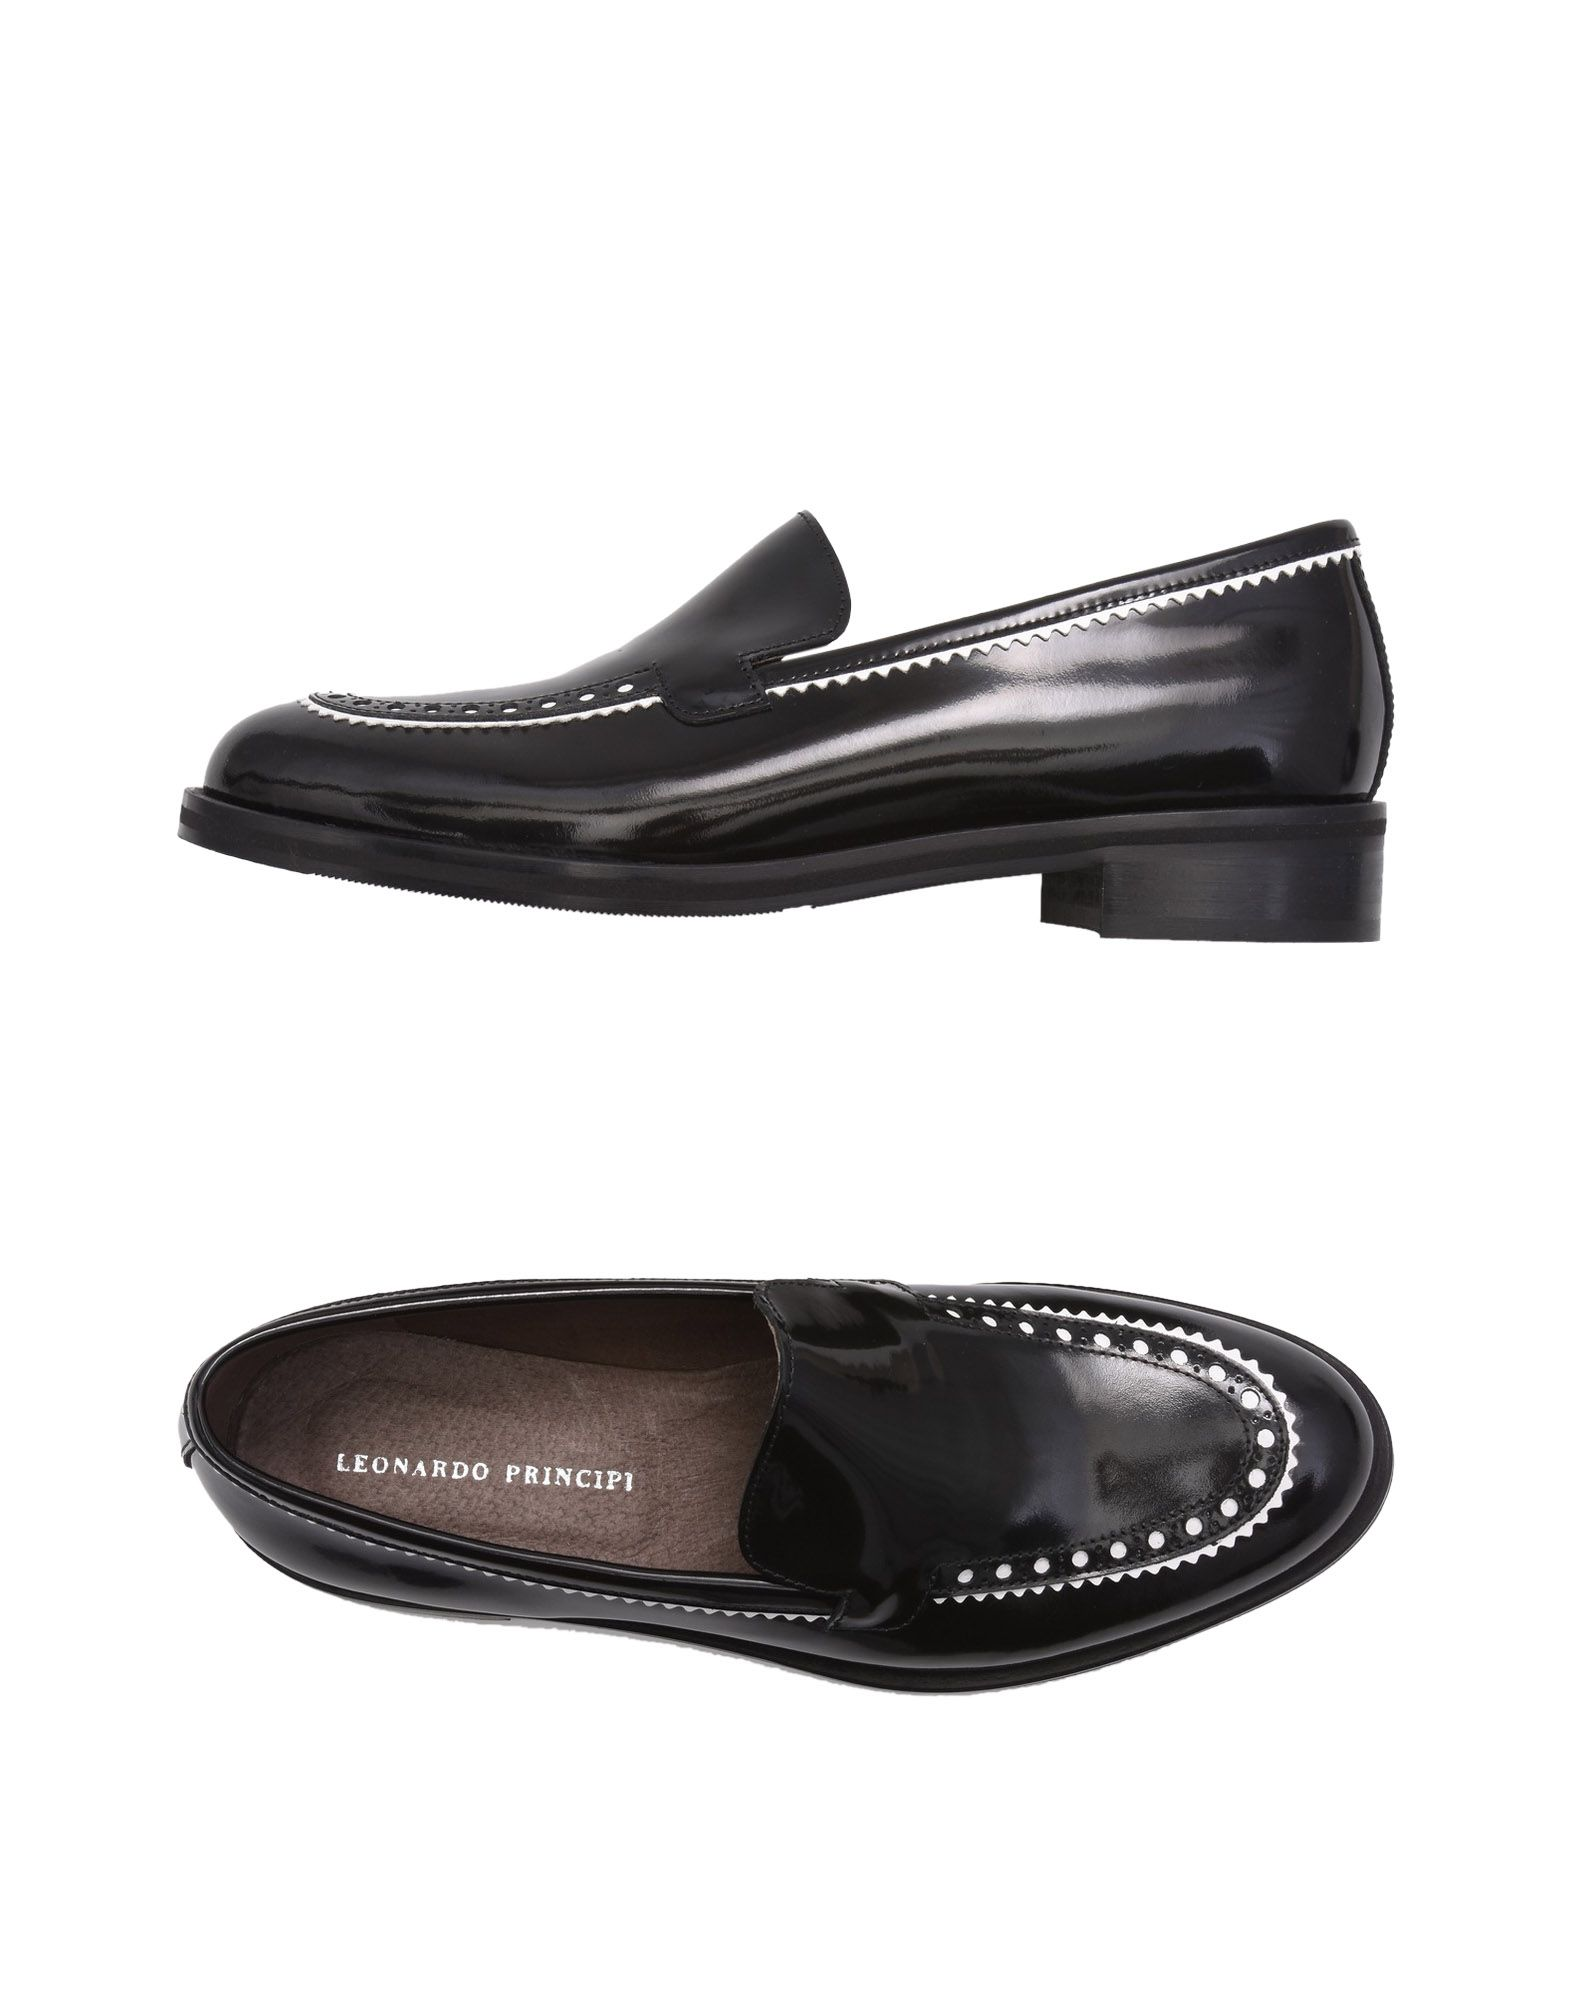 Leonardo Principi Loafers - Women Leonardo Principi Loafers online on 11521848AT  United Kingdom - 11521848AT on 97e8e3